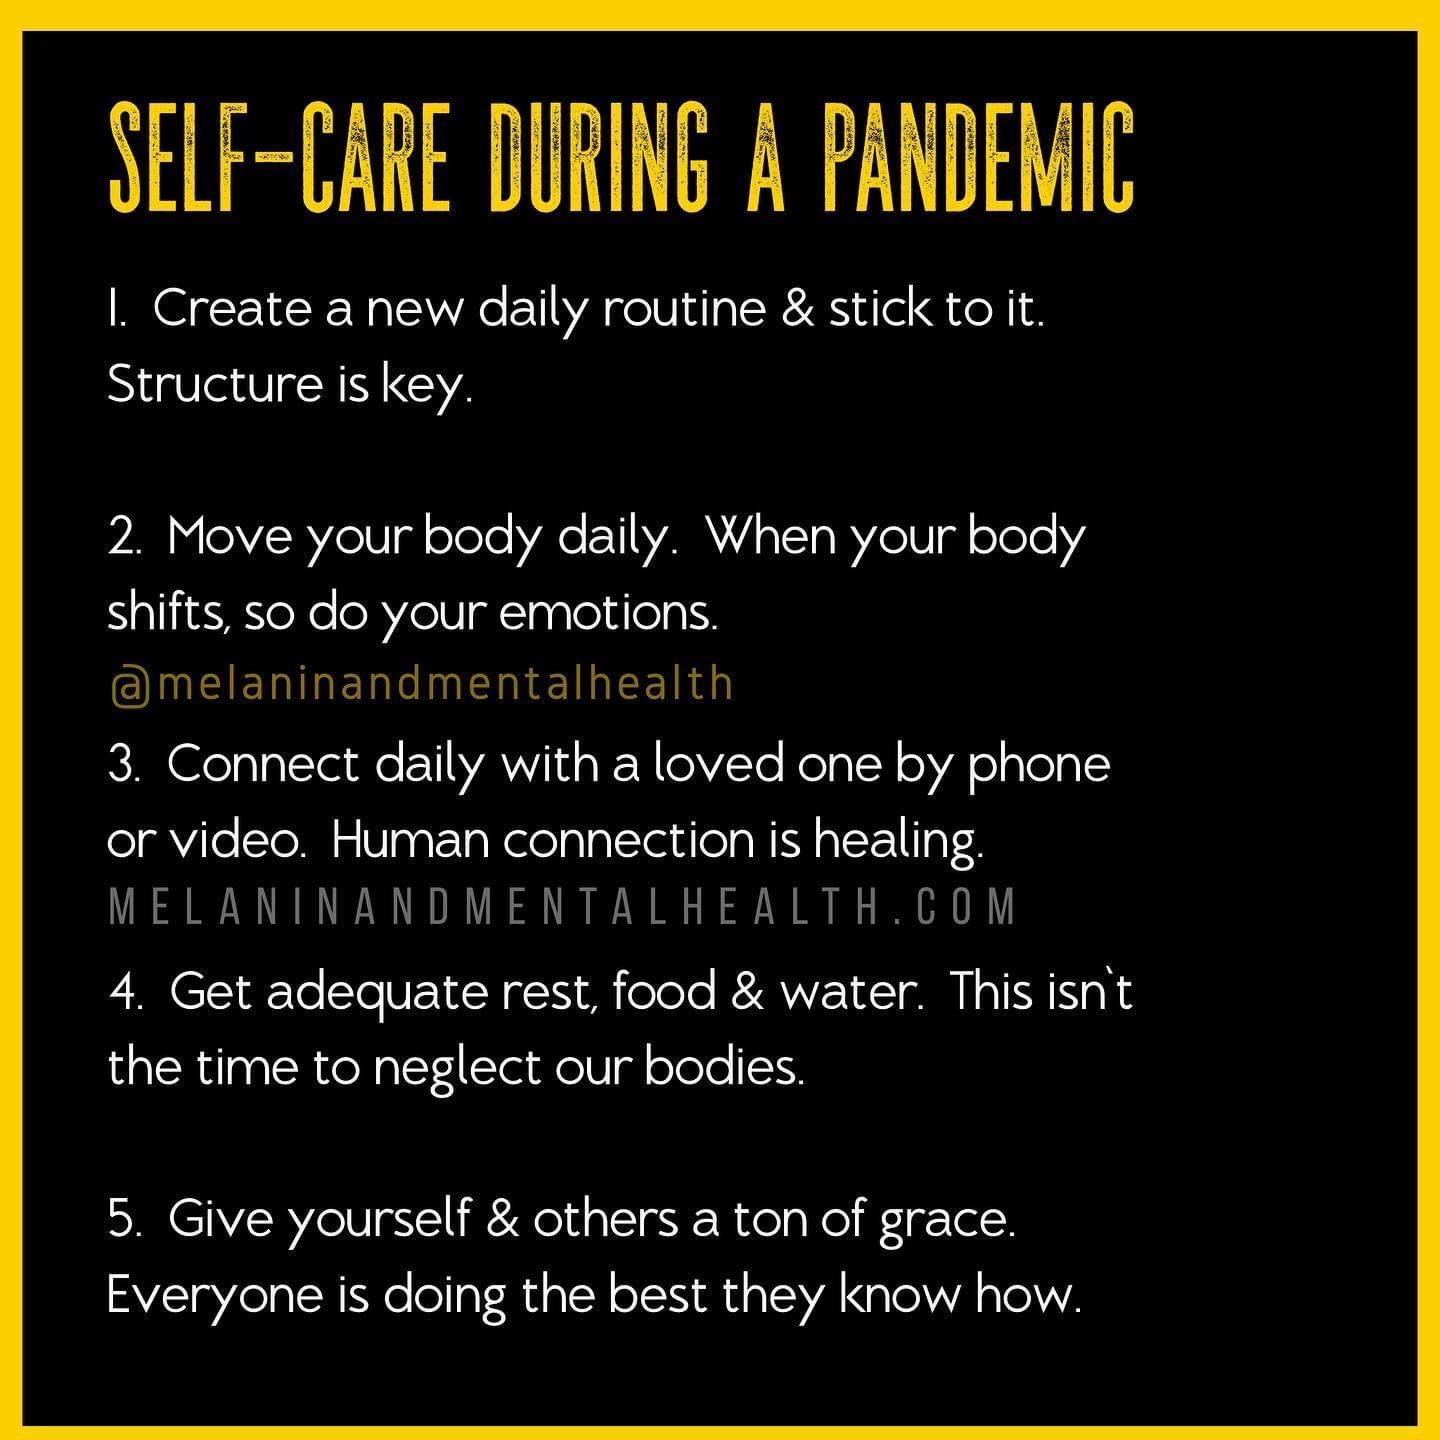 Self-Care During a Pandemic